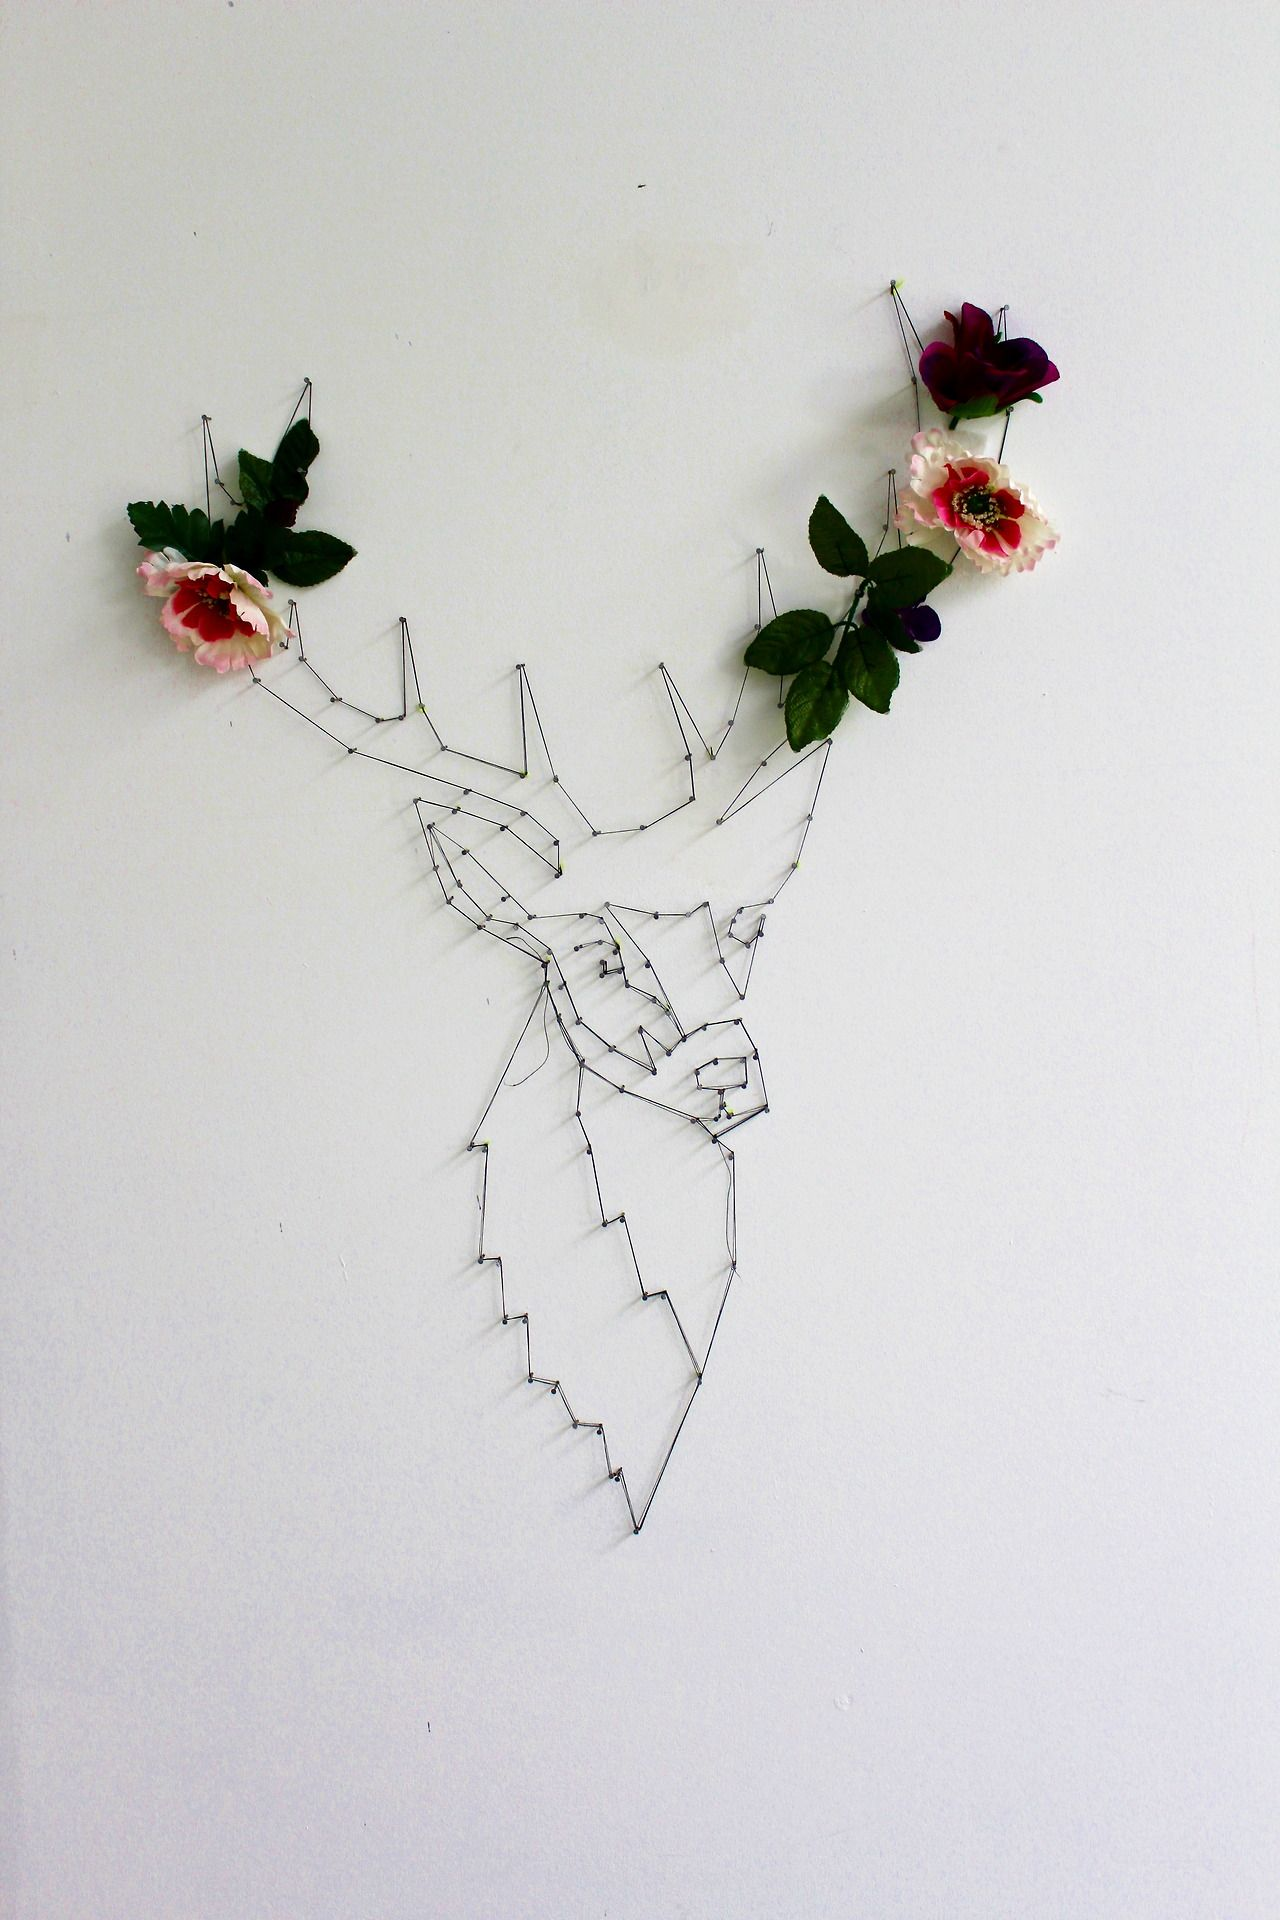 Pin and string diy kits by Ouch http://the-ouch.tumblr.com ...